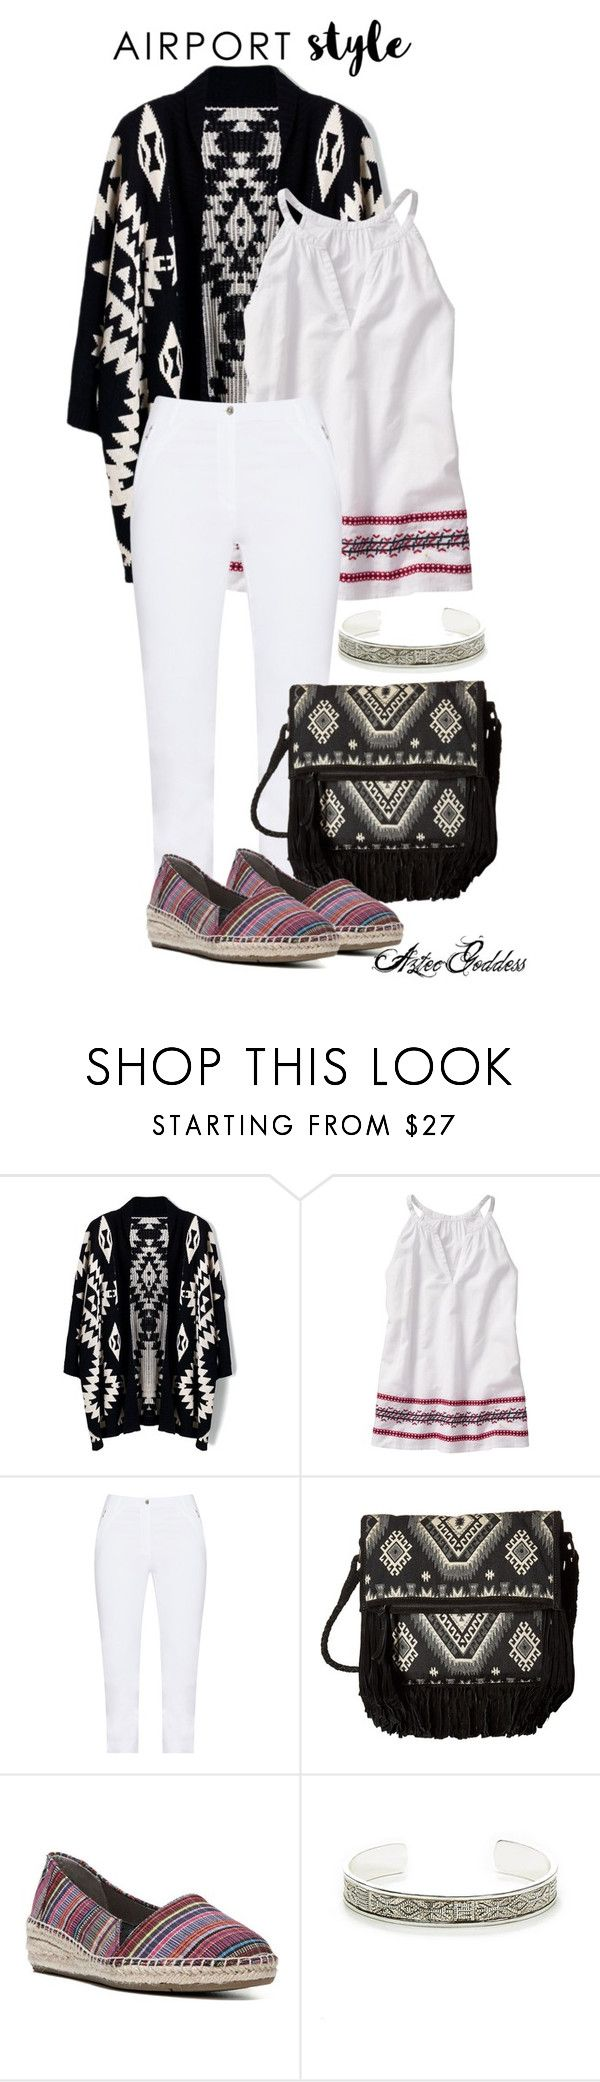 """Aztec Airport Style"" by aztecgoddess-quetzal ❤ liked on Polyvore featuring Chicwish, Jennifer Bryde, Scully, LifeStride and Sole Society"